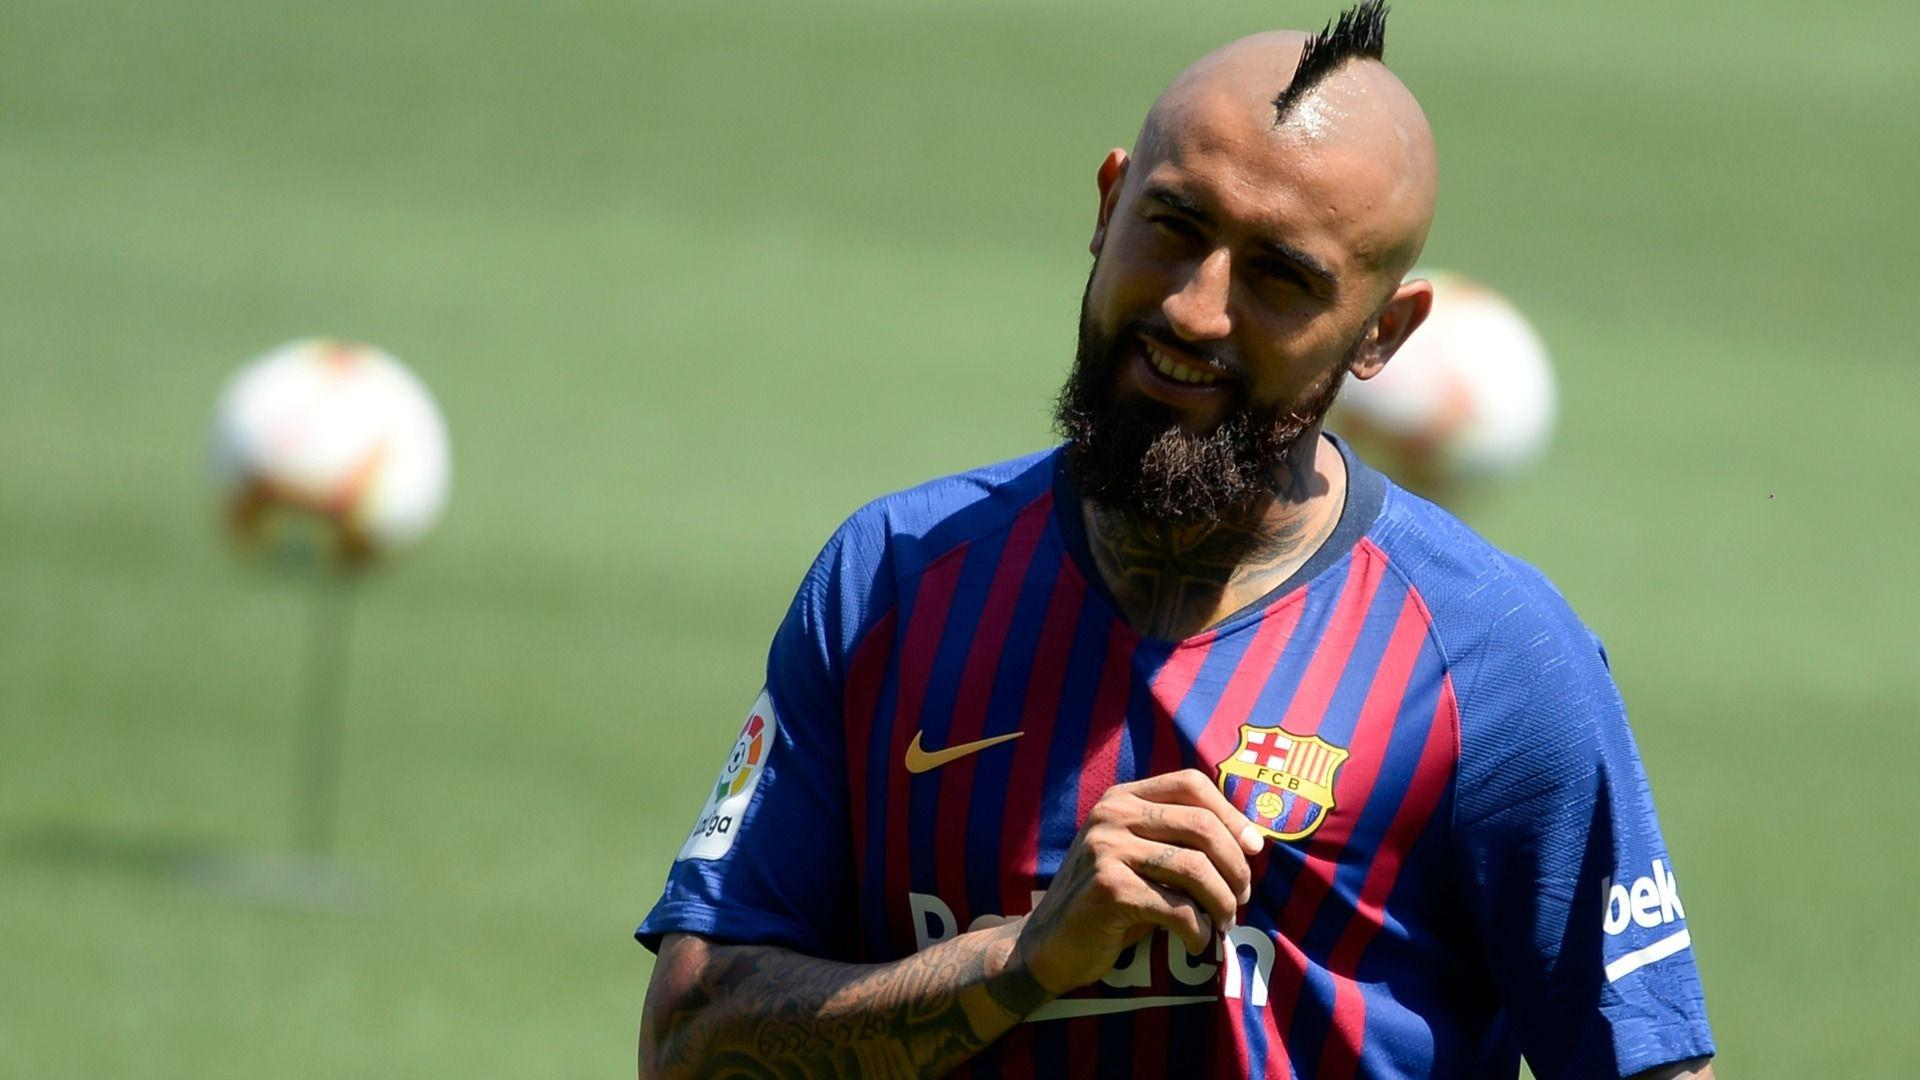 Download 1920x1080 Barcelona, Arturo Vidal Wallpapers for Widescreen